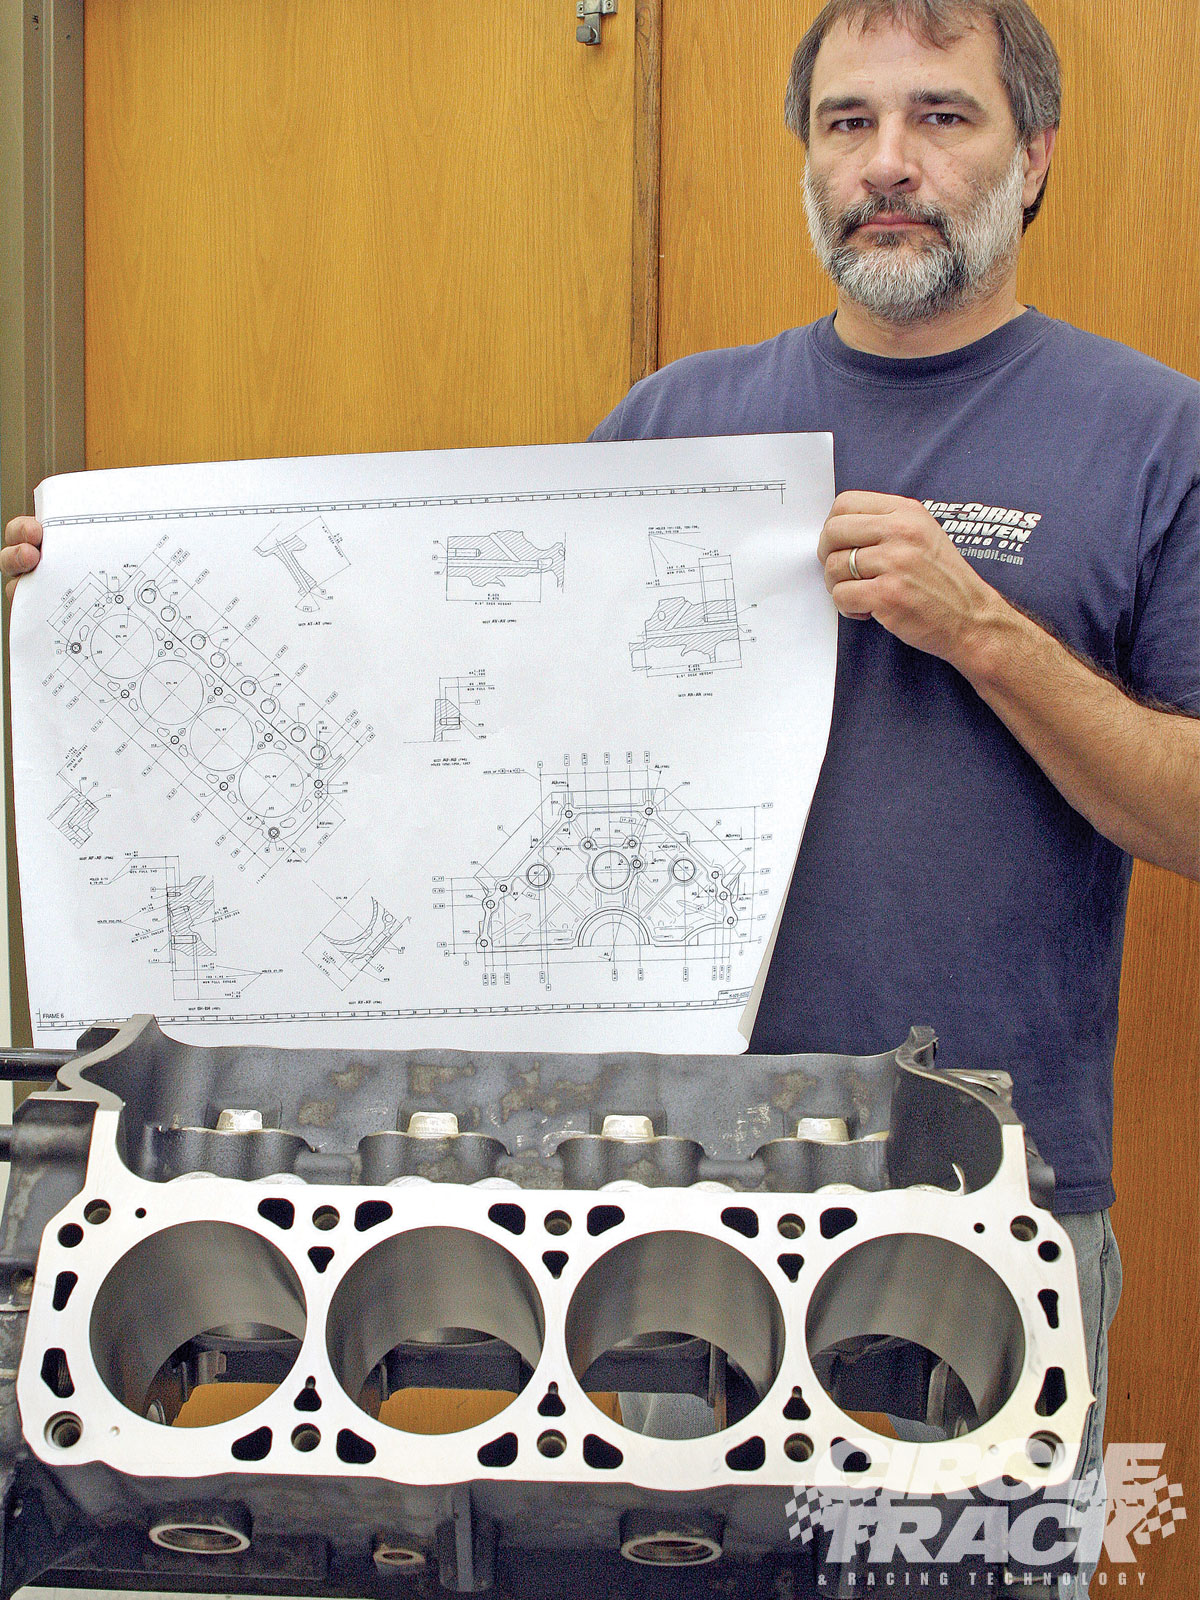 Engine builder Charlie Long was one of the first people outside of Ford to get his hands on Ford's new 351 Boss block and N351 racing cylinder heads. Here, he compares the casting to Ford's own blueprints for Circle Track.